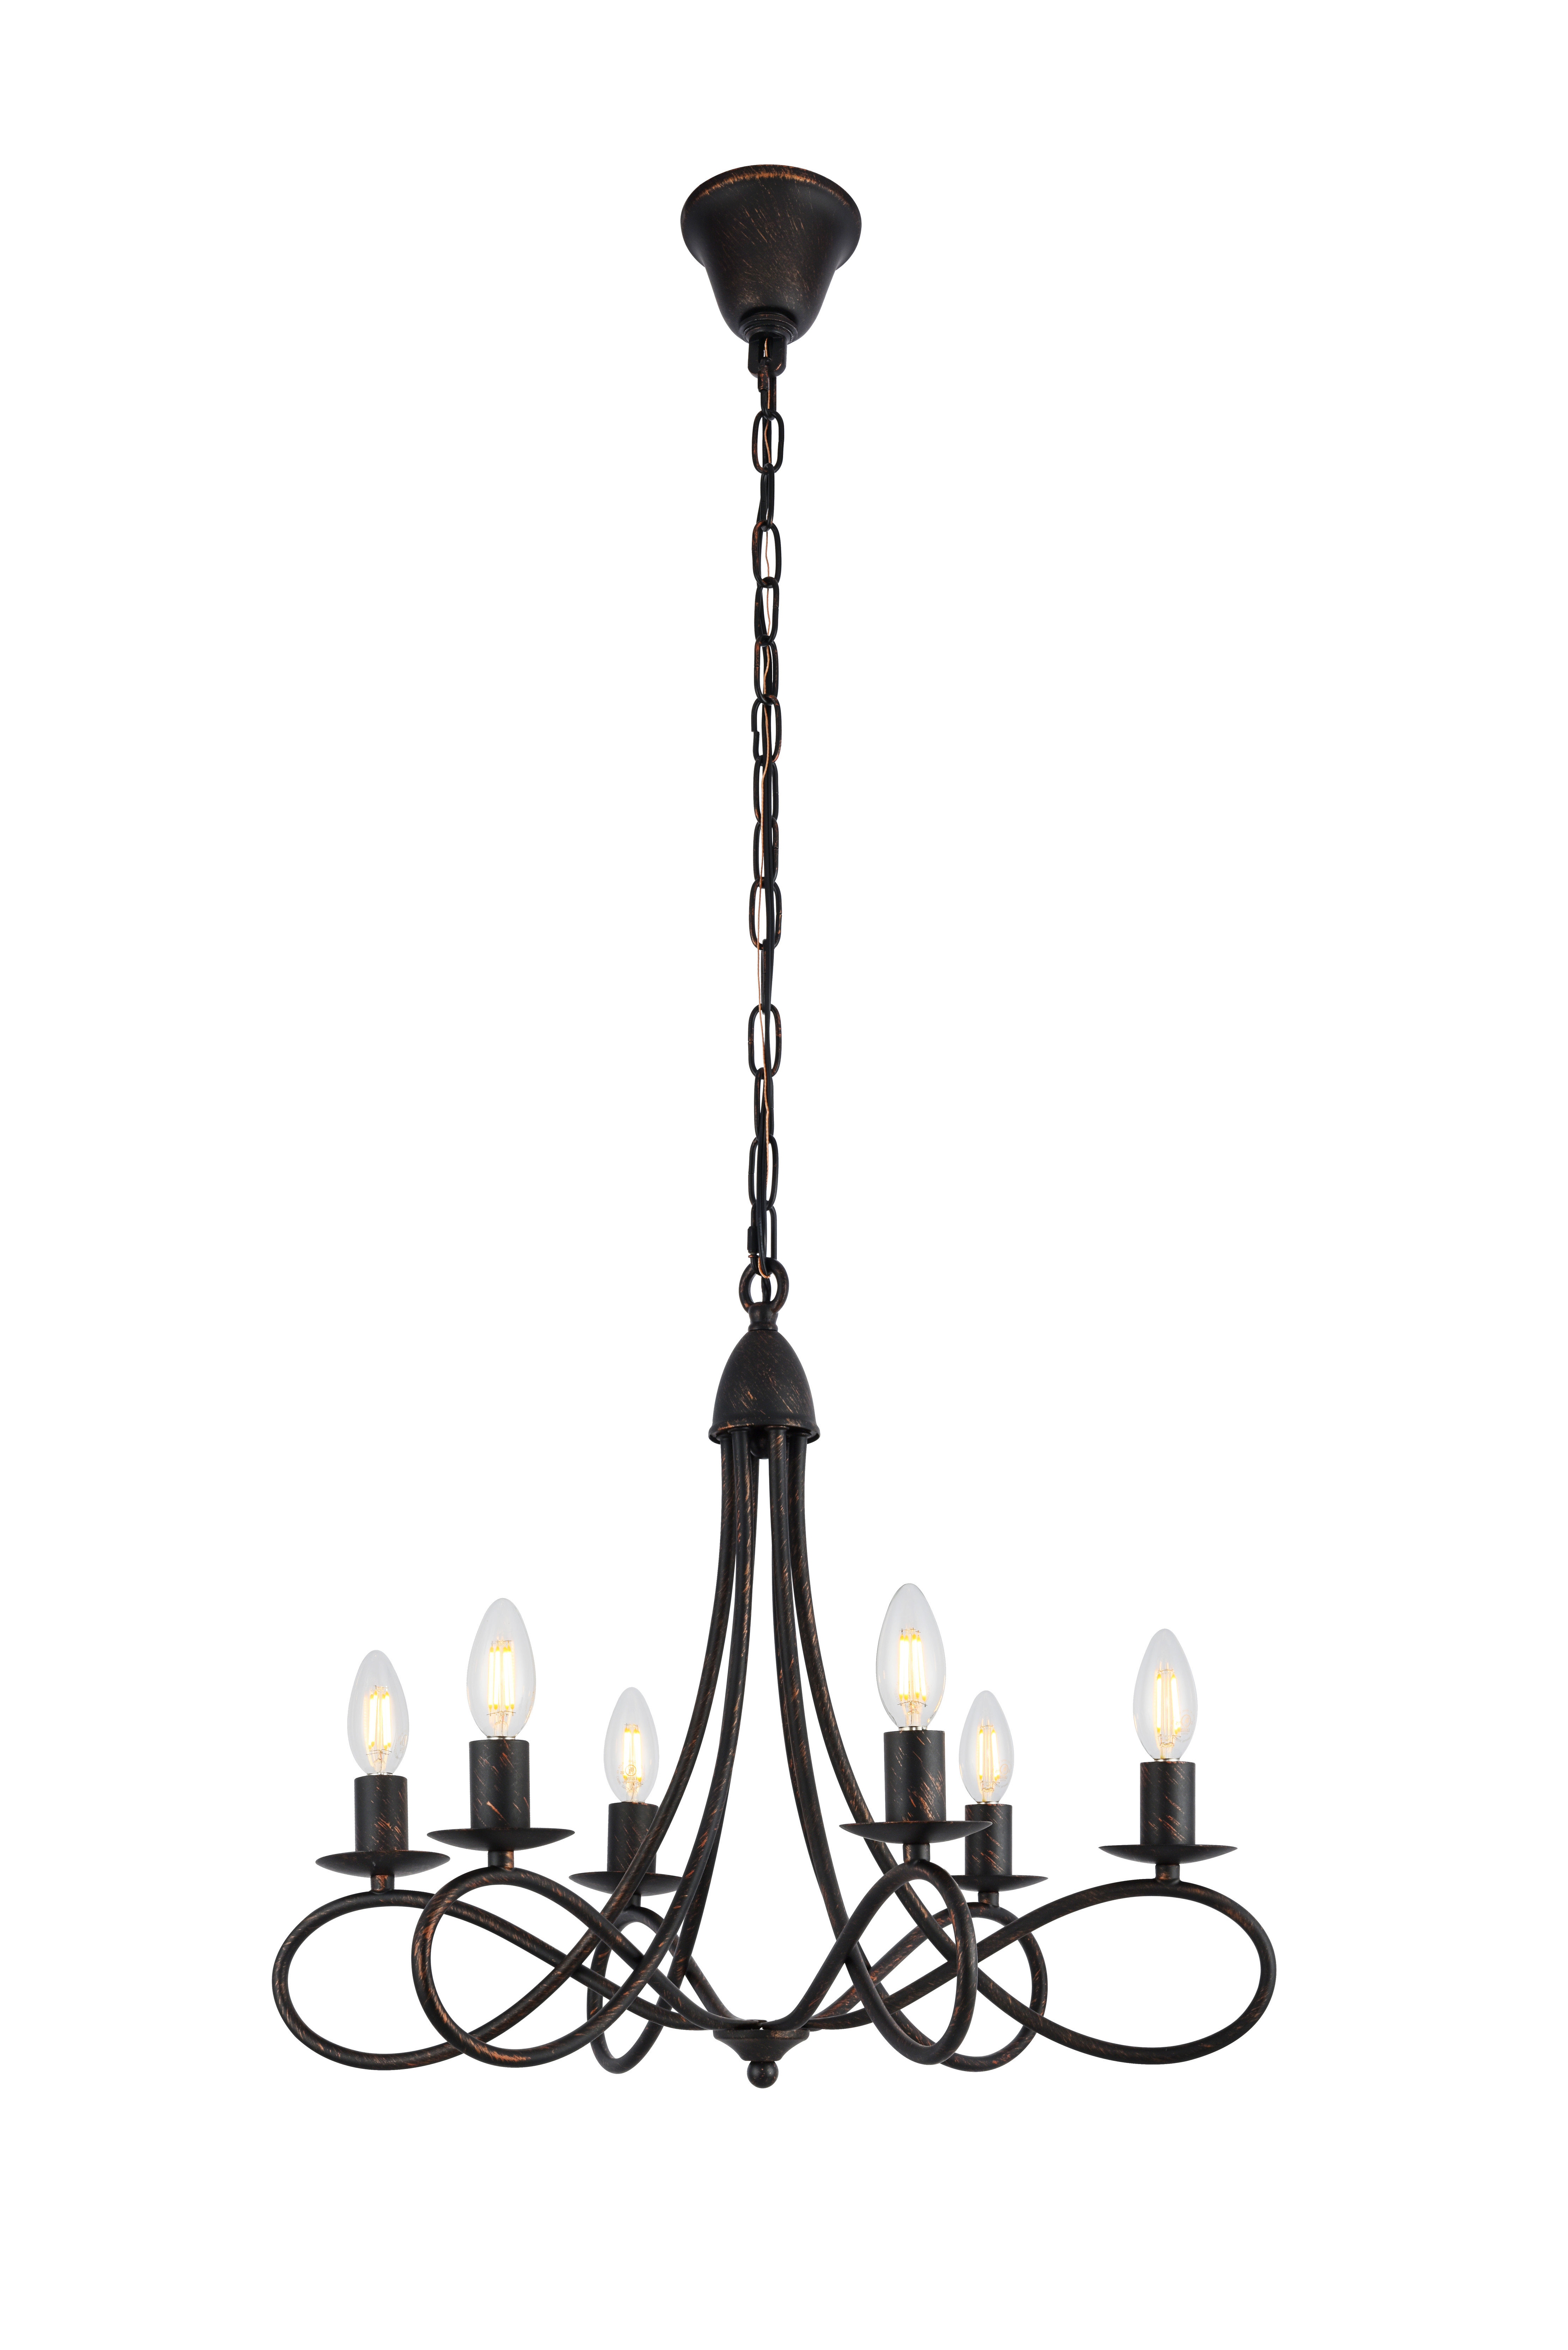 Sherri 6 Light Chandeliers Intended For Current Darby Home Co Diaz 6 Light Candle Style Chandelier (Gallery 13 of 20)